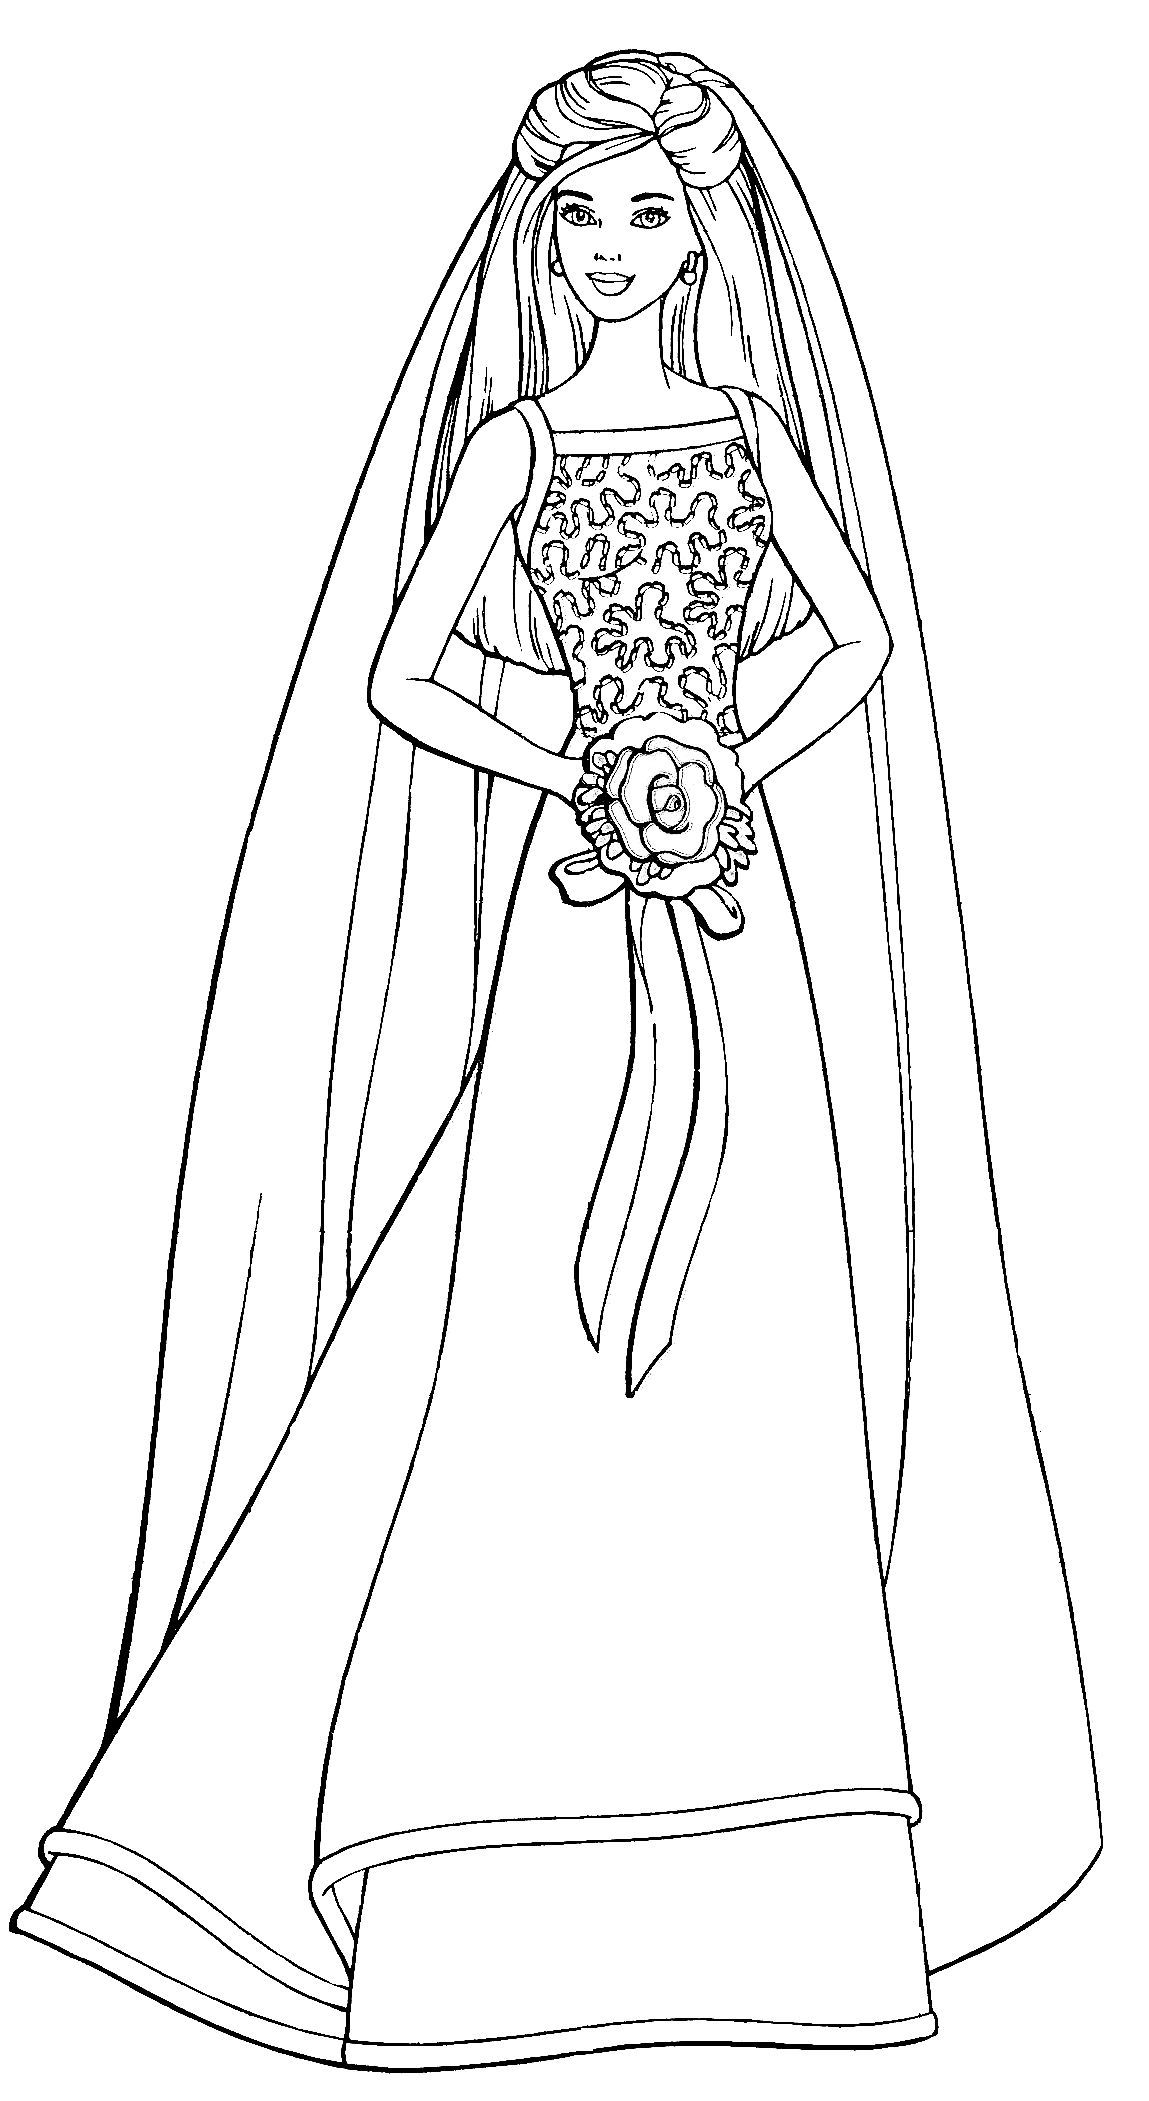 6 Girls Coloring Barbie Pin By Tsvetelina On Barbie Coloring Barbie Coloring Pages Barbie Coloring Disney Princess Coloring Pages